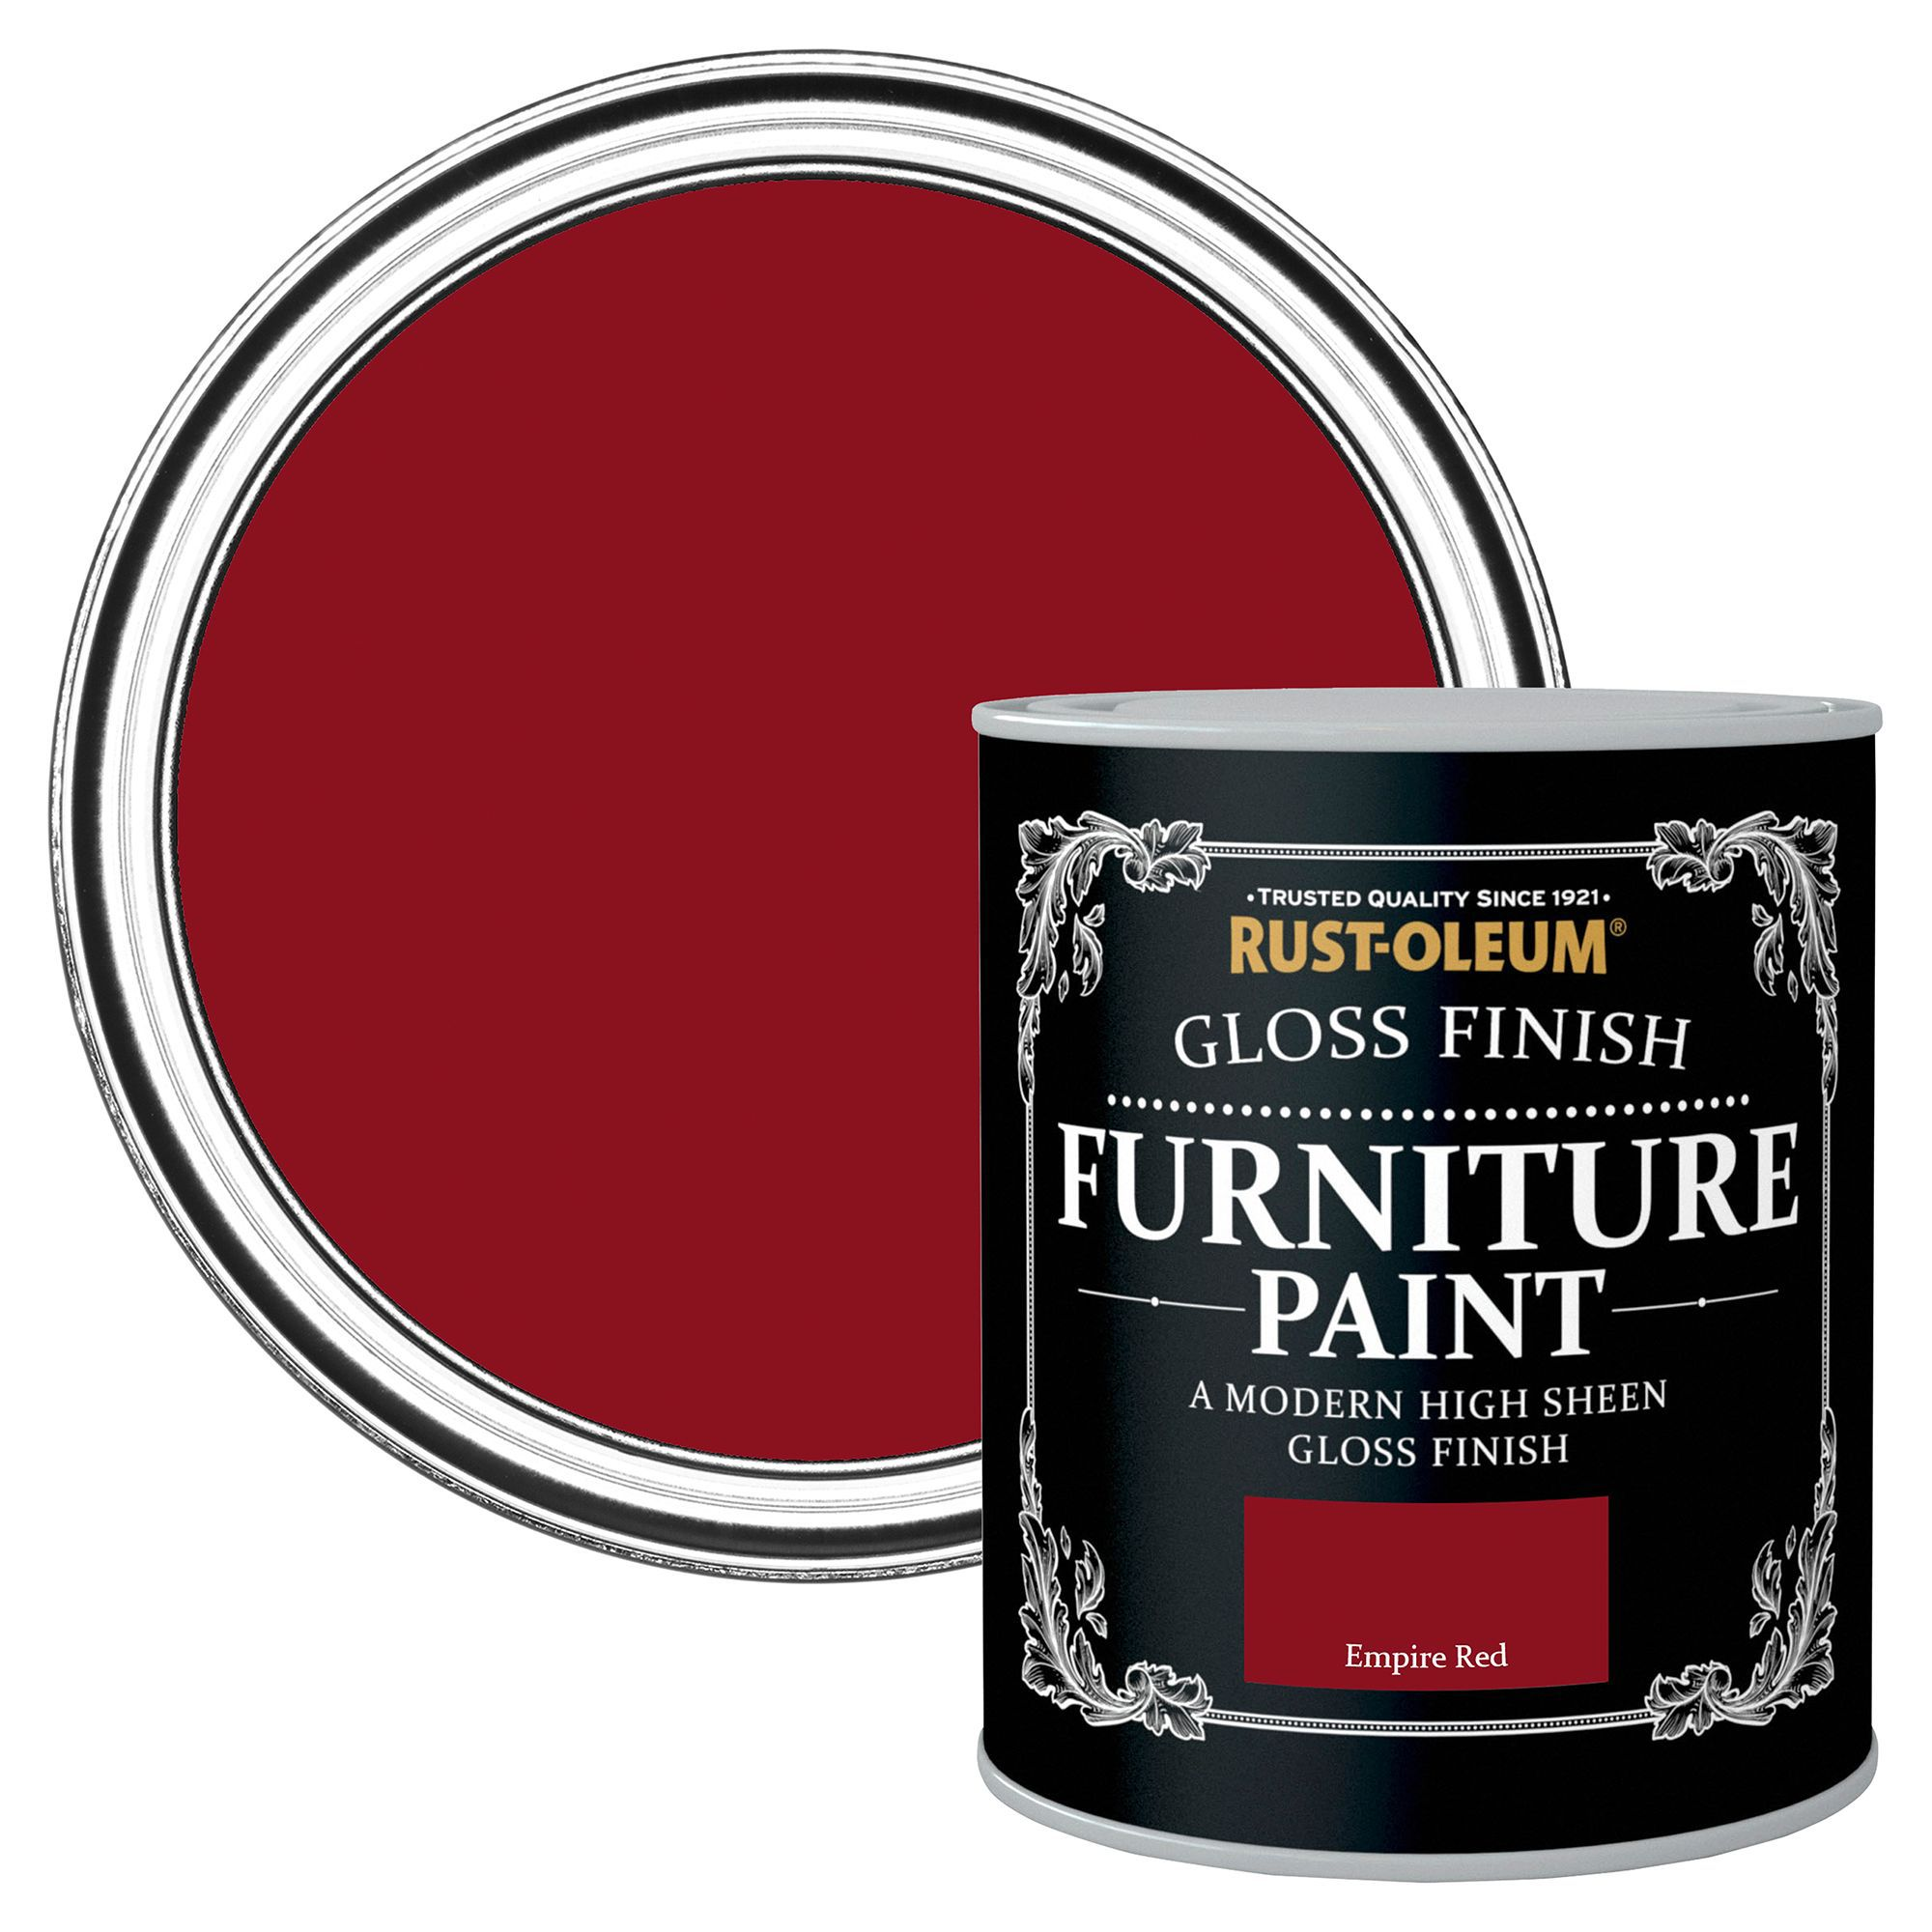 Rust-oleum Empire Red Gloss Furniture Paint 750 Ml